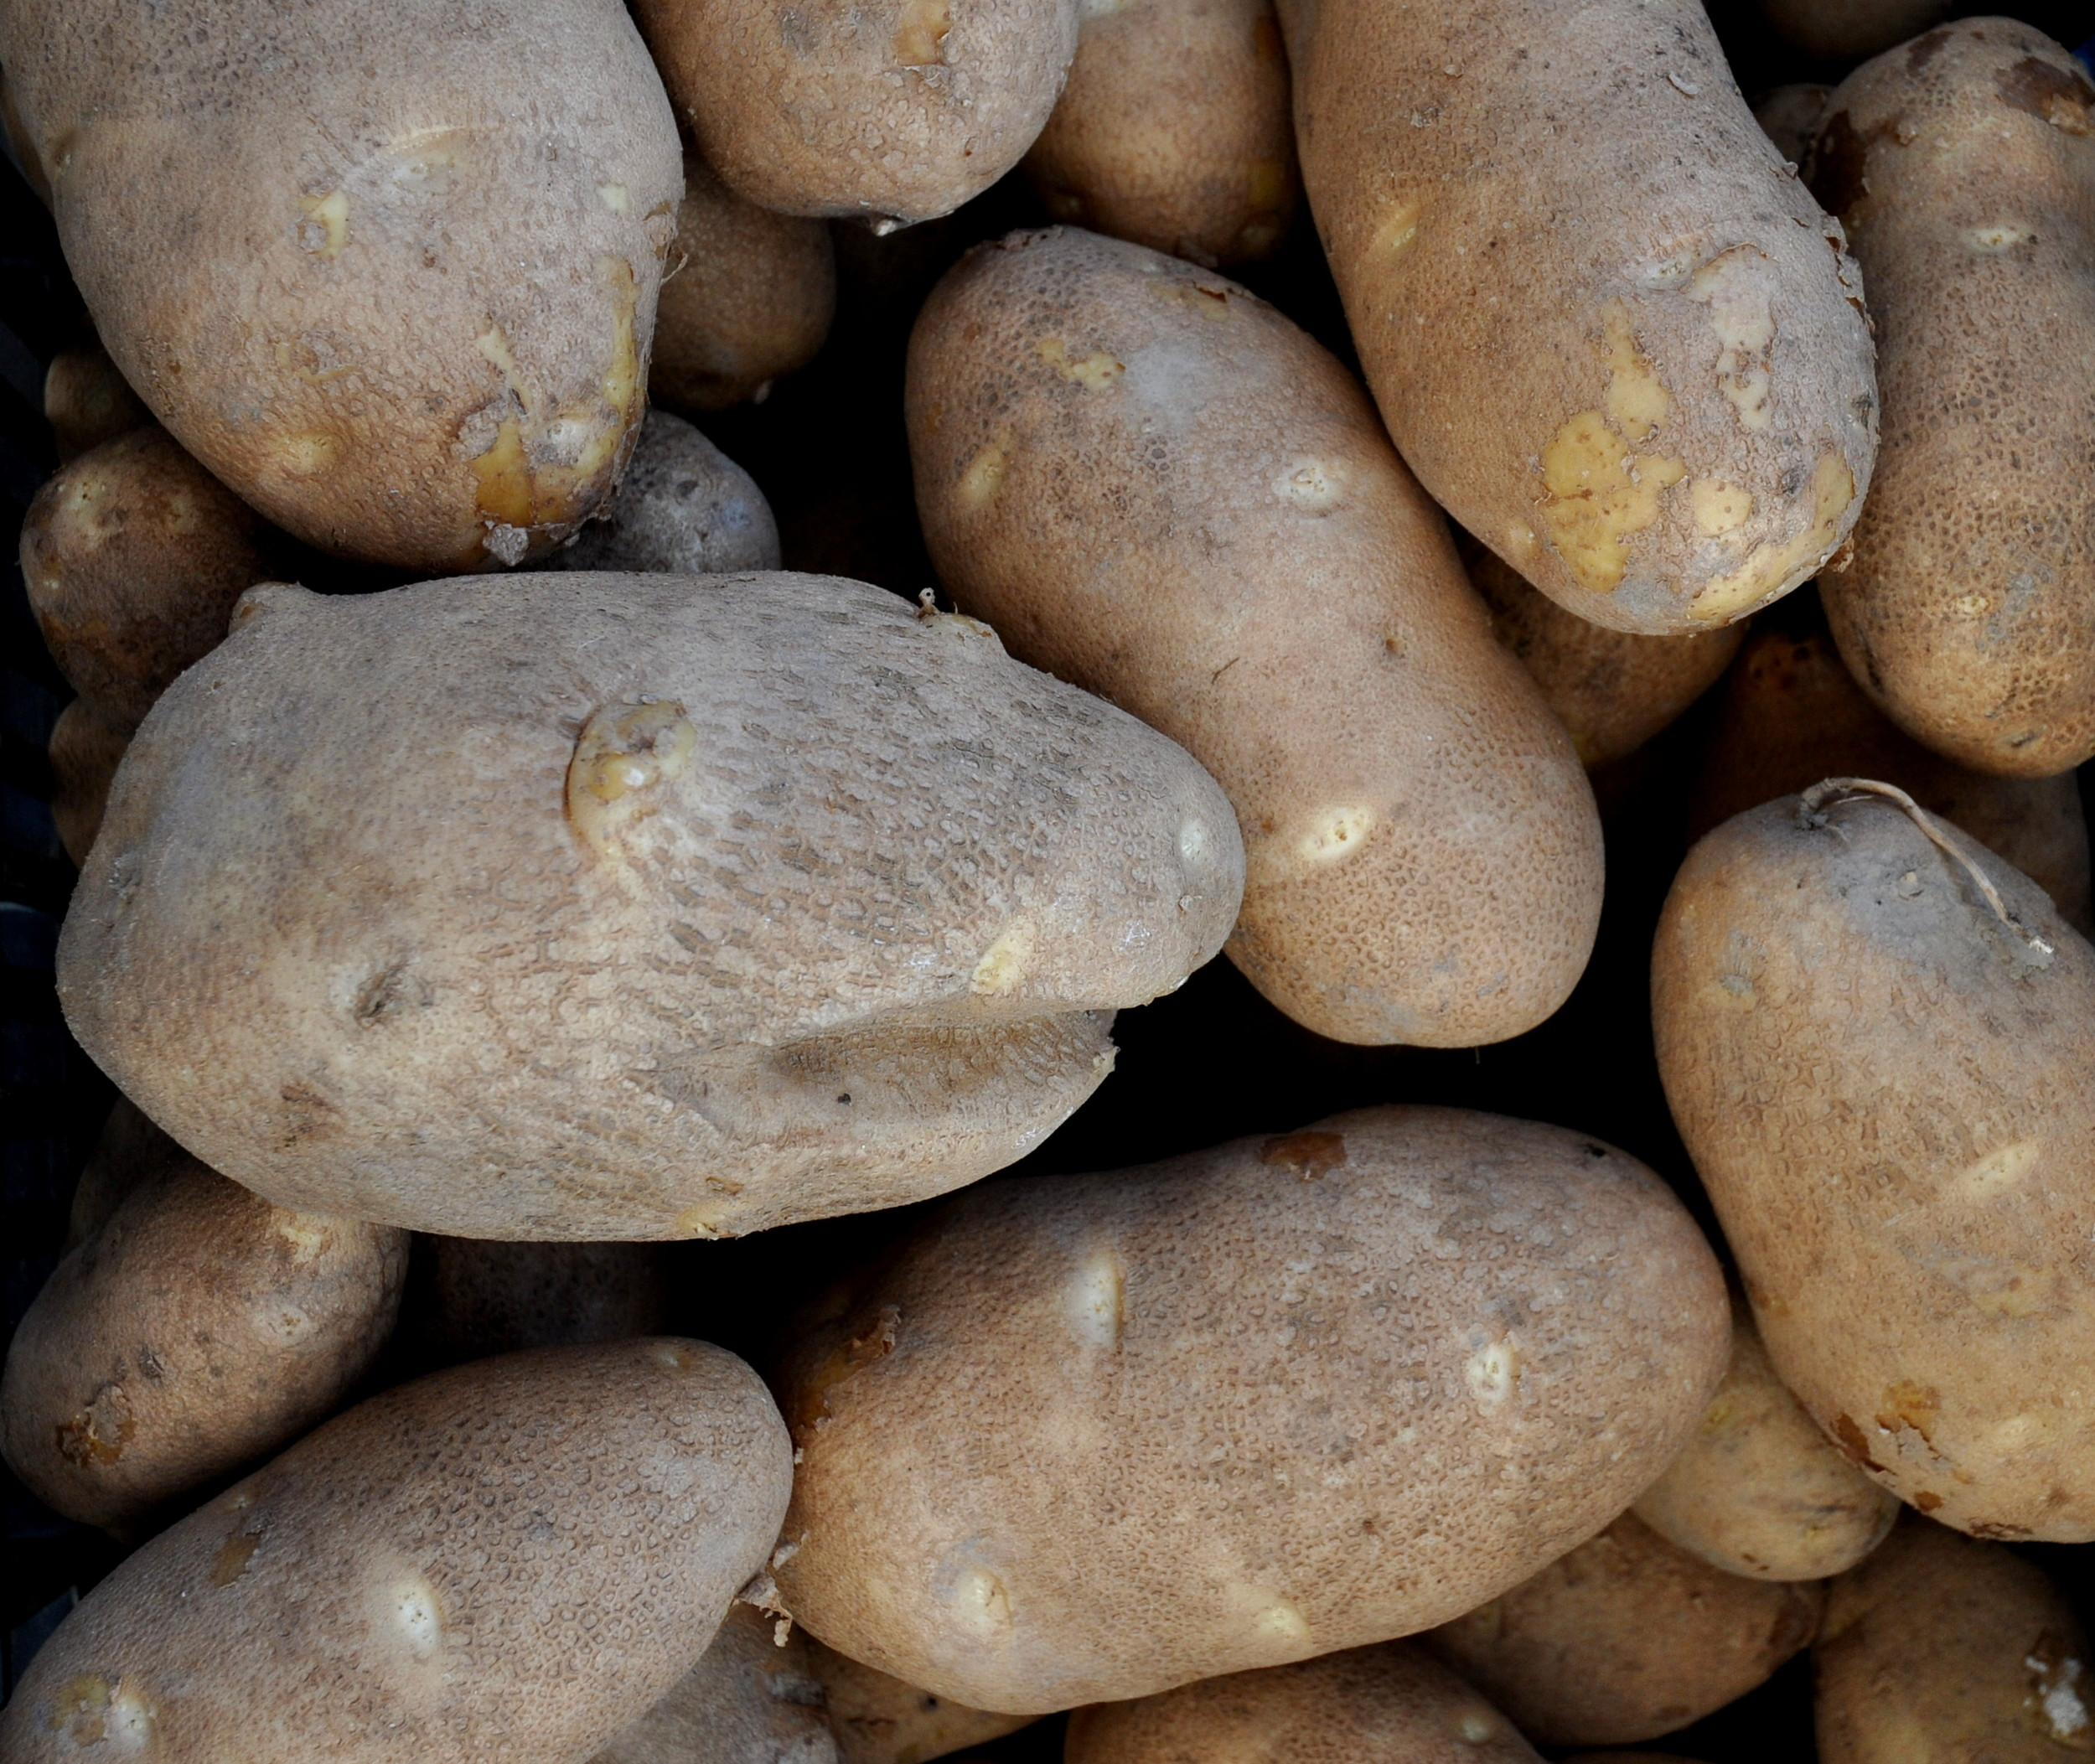 Rio Grande russet potatoes from Olsen Farms. Photo copyright 2013 by Zachary D. Lyons.